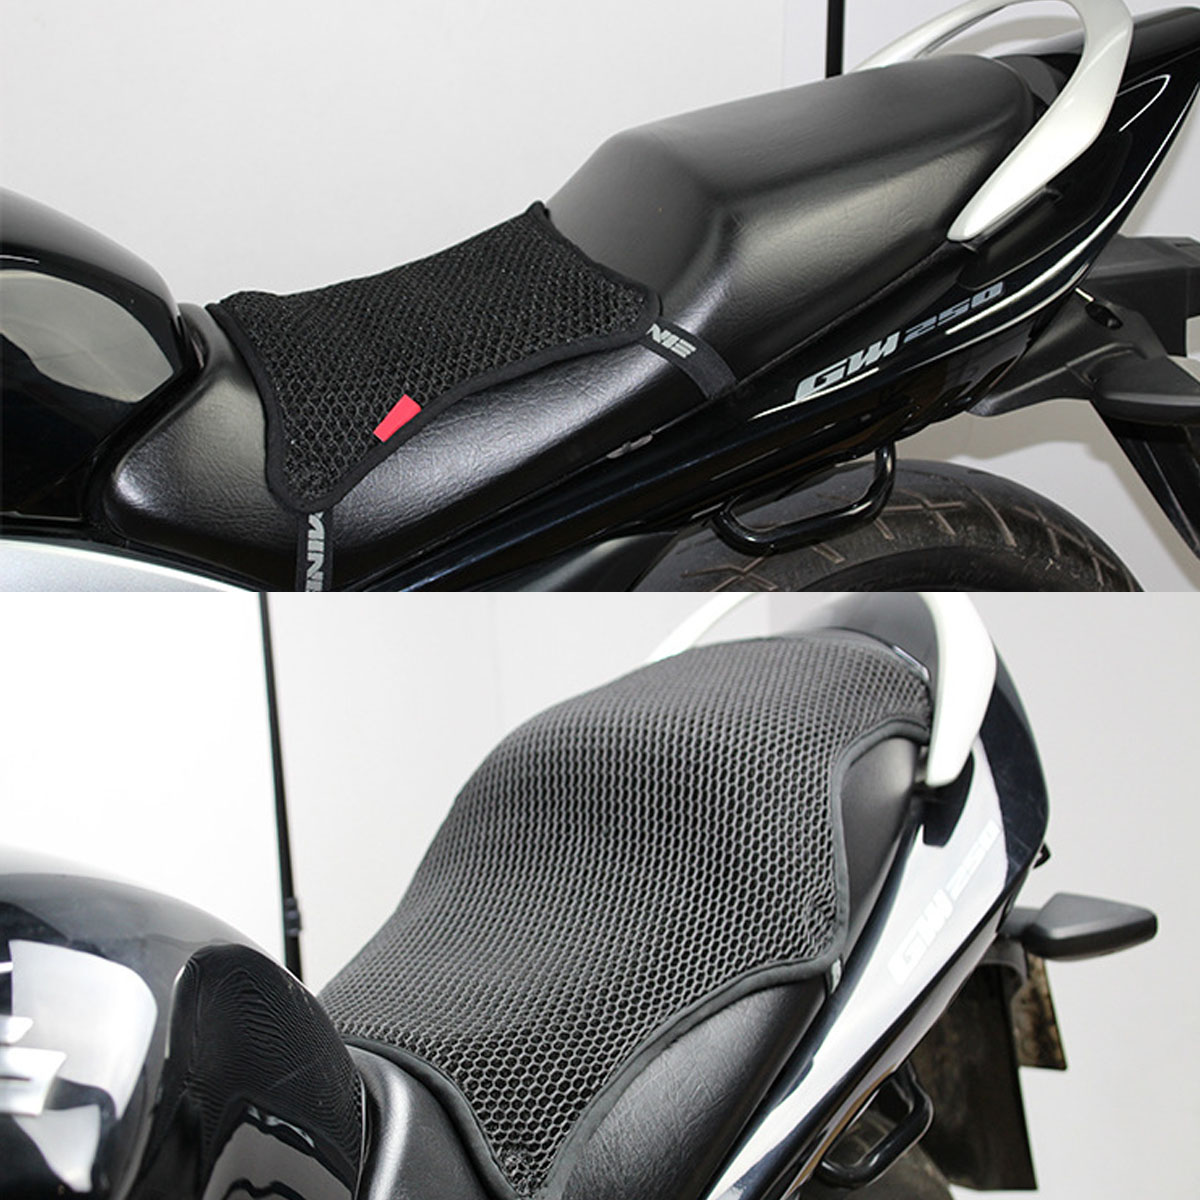 S/M/L/XL 3D Honeycomb Universal Motorcycle Cool Seat Cover Mesh Cushion Breathable Pad